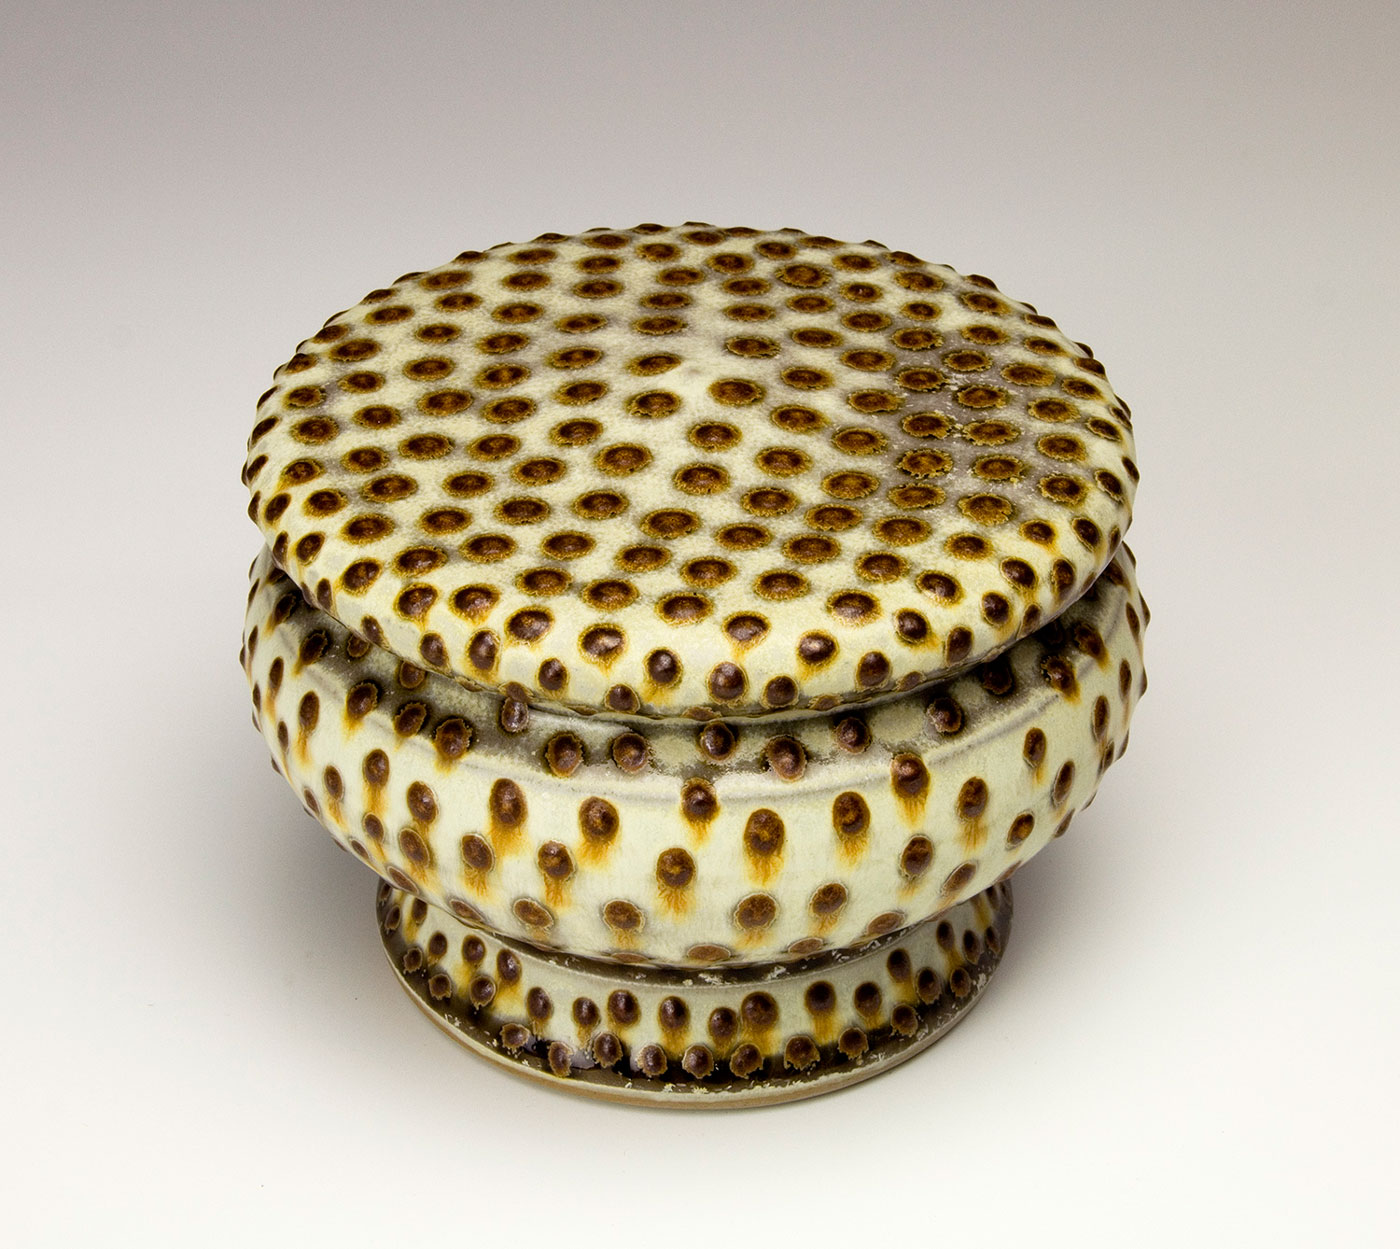 Covered-Jar-with-red-brown-dots-Samantha-Henneke-Seagrove-North-Carolina.jpg